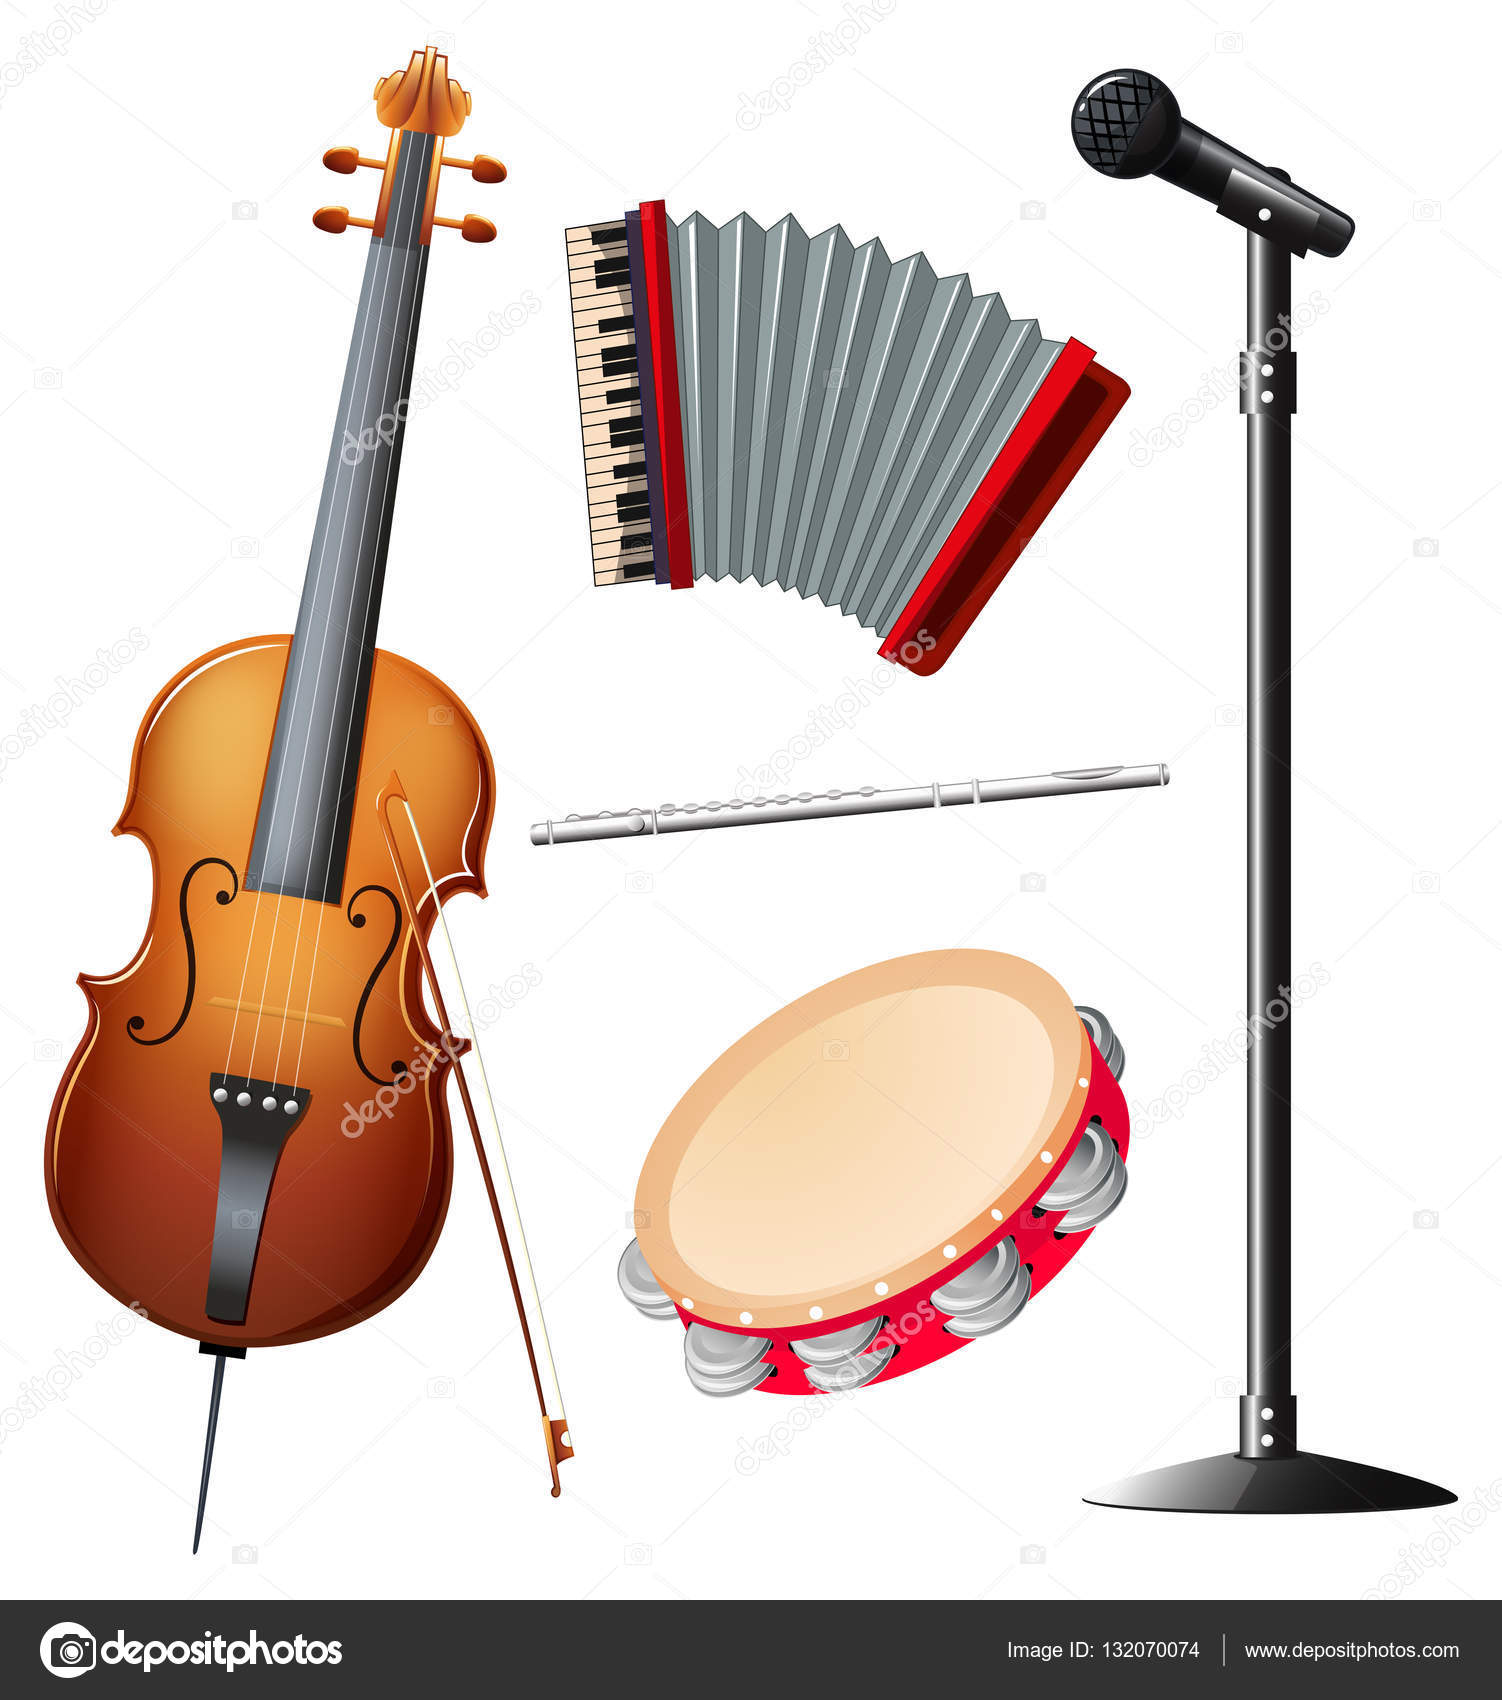 types of musical instruments No matter which type you choose you'll find the band & orchestra instruments and , {n:classroom instruments,u:/classroom-musical-instruments.